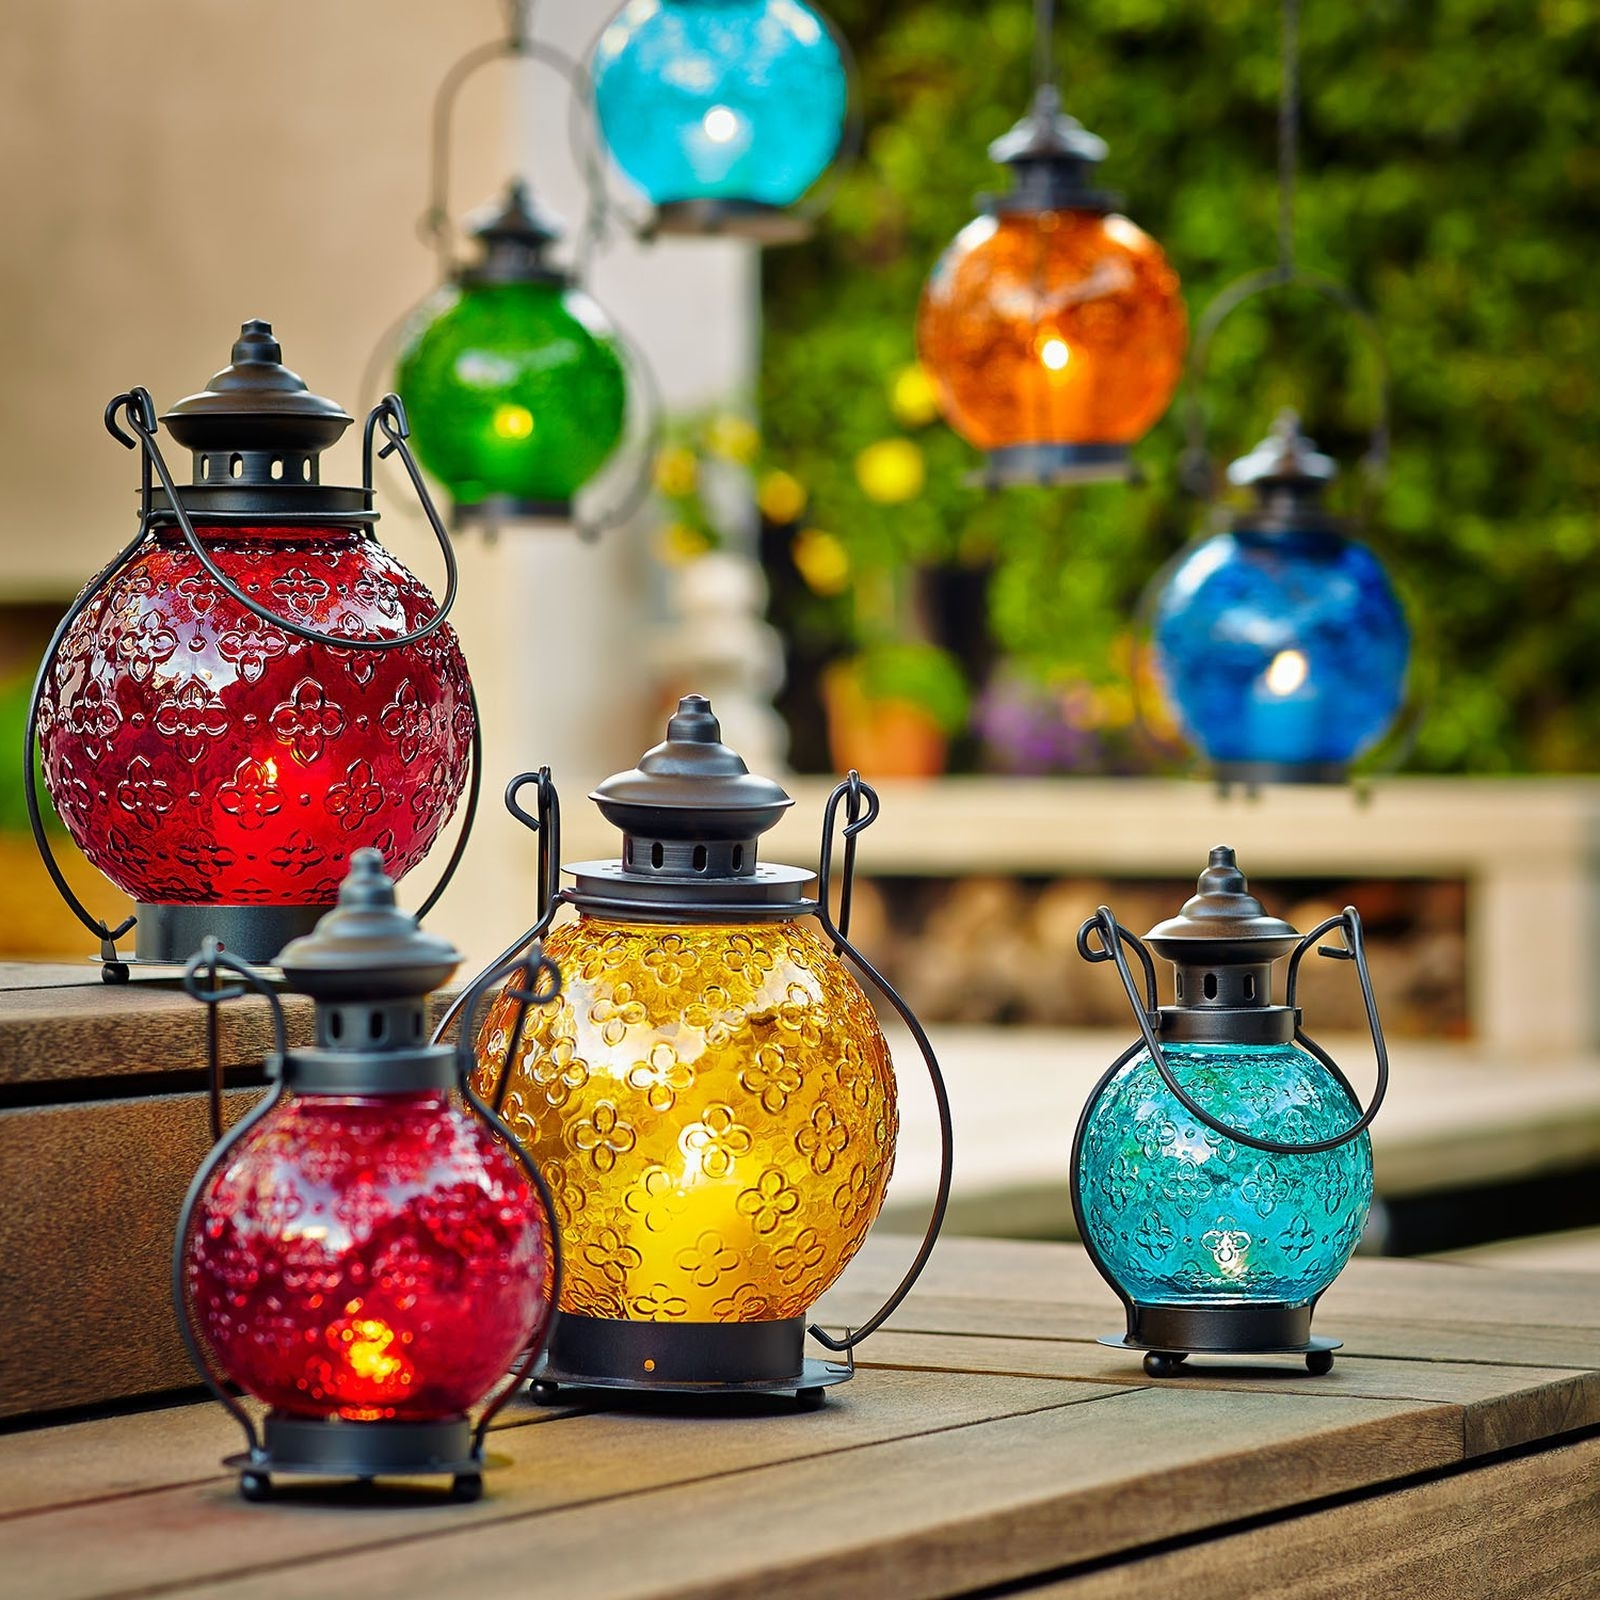 Most Recently Released You Can Still Be The Life Of Your Parties, But Let These Indoor Pertaining To Outdoor Lanterns For Parties (View 13 of 20)